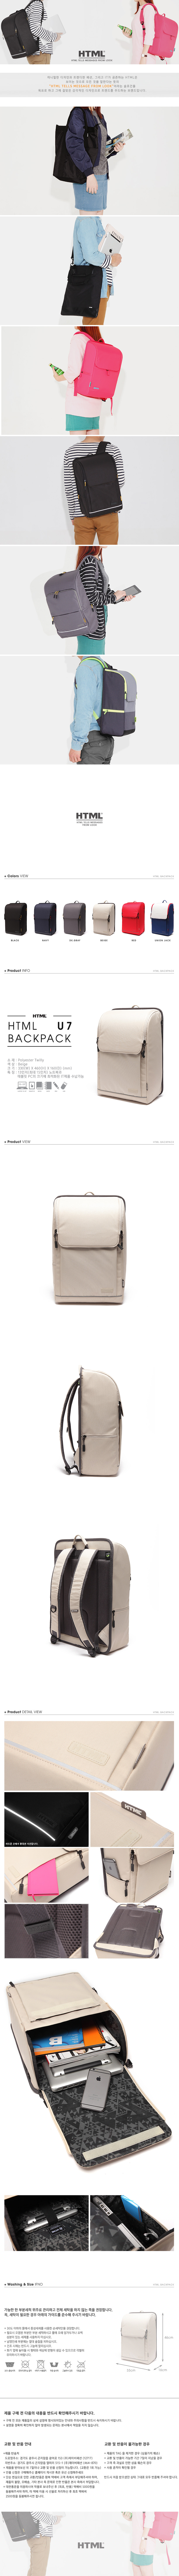 [에이치티엠엘]HTML-NEW U7 (2015) Backpack (BEIGE)_백팩